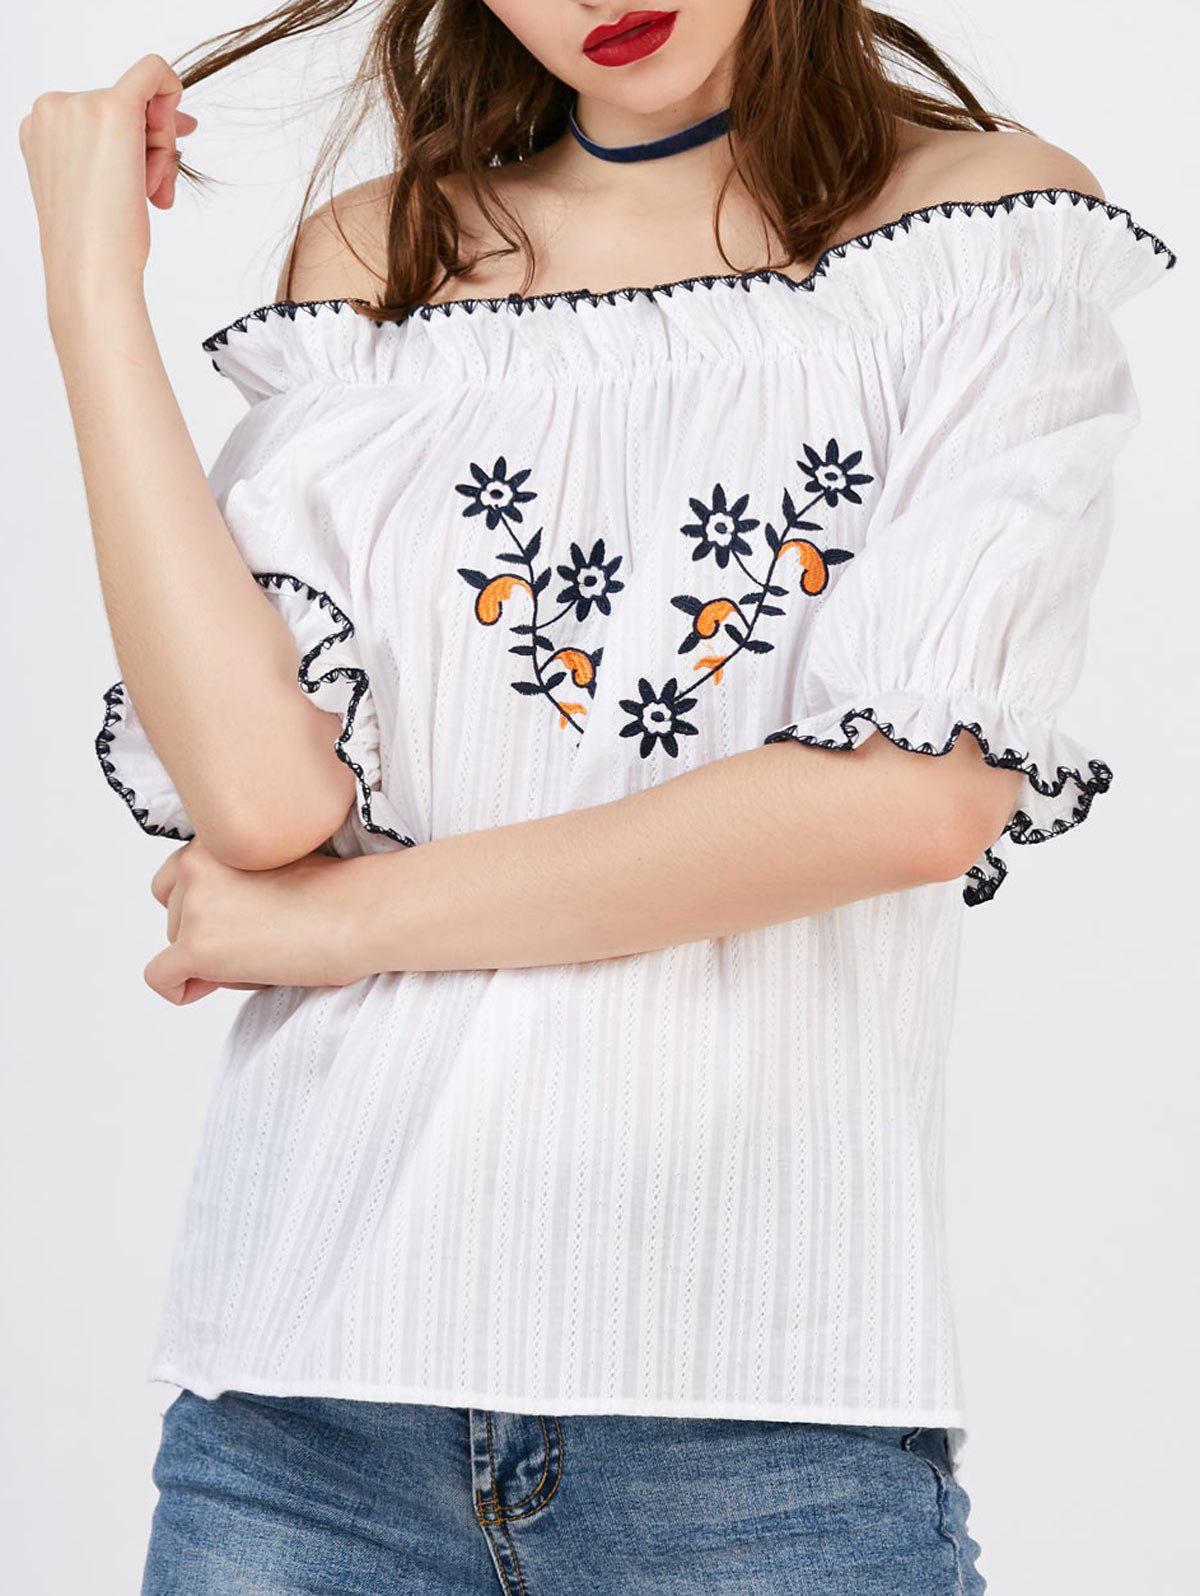 Hot Floral Embroidery Off The Shoulder Blouse